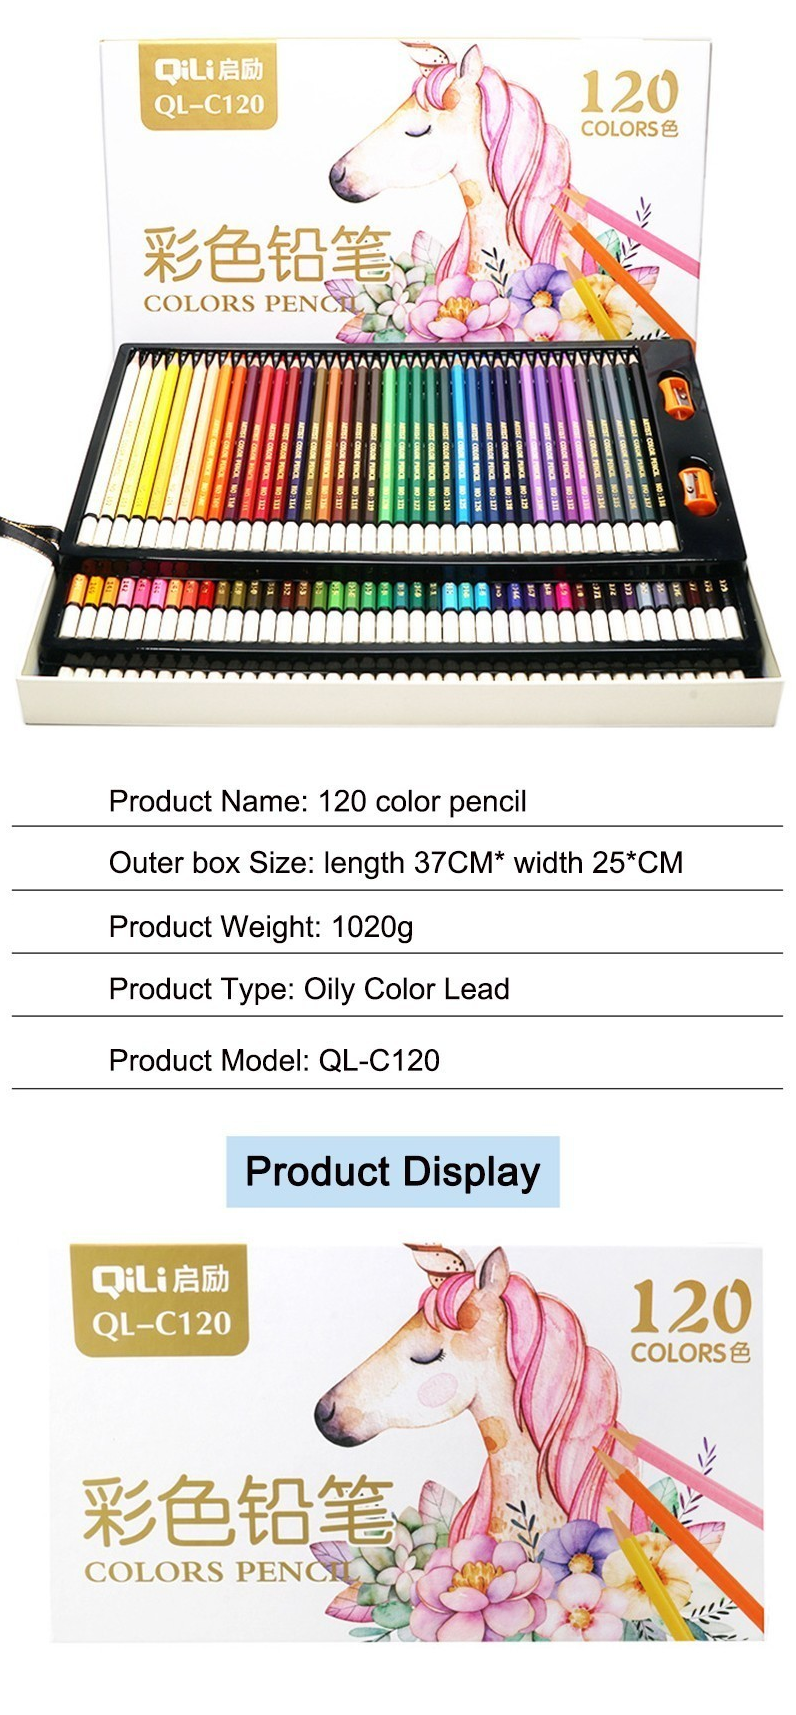 QiLi QL-C120 120 Colors Wood Colored Pencils Artist Painting Oil Color Pencil For School Drawing Sketch Drawing Art Supplies Stationery